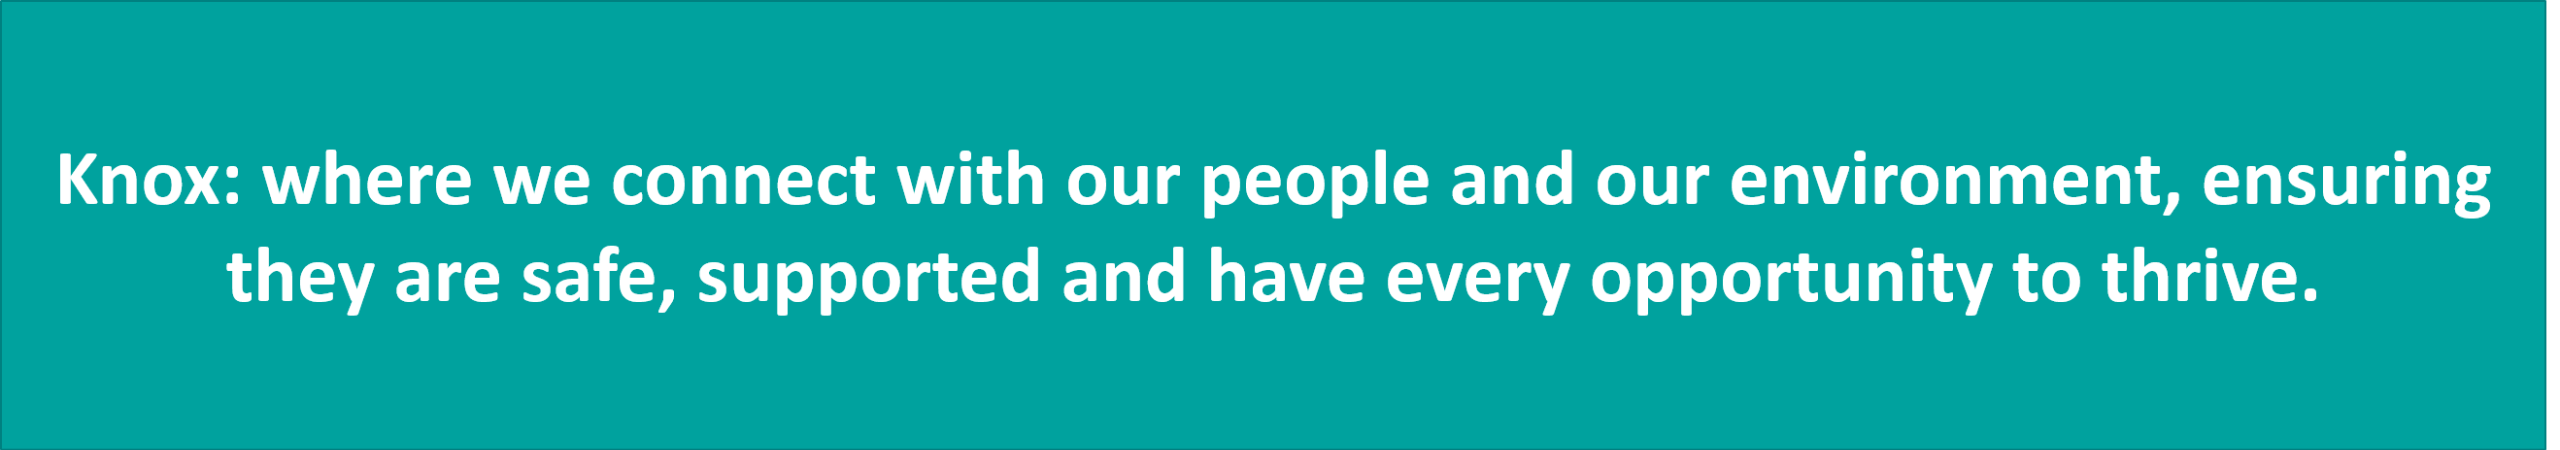 Our preferred vision statement is Knox: where we connect with our people and our environment, ensuring they are safe, supported and have every opportunity to thrive